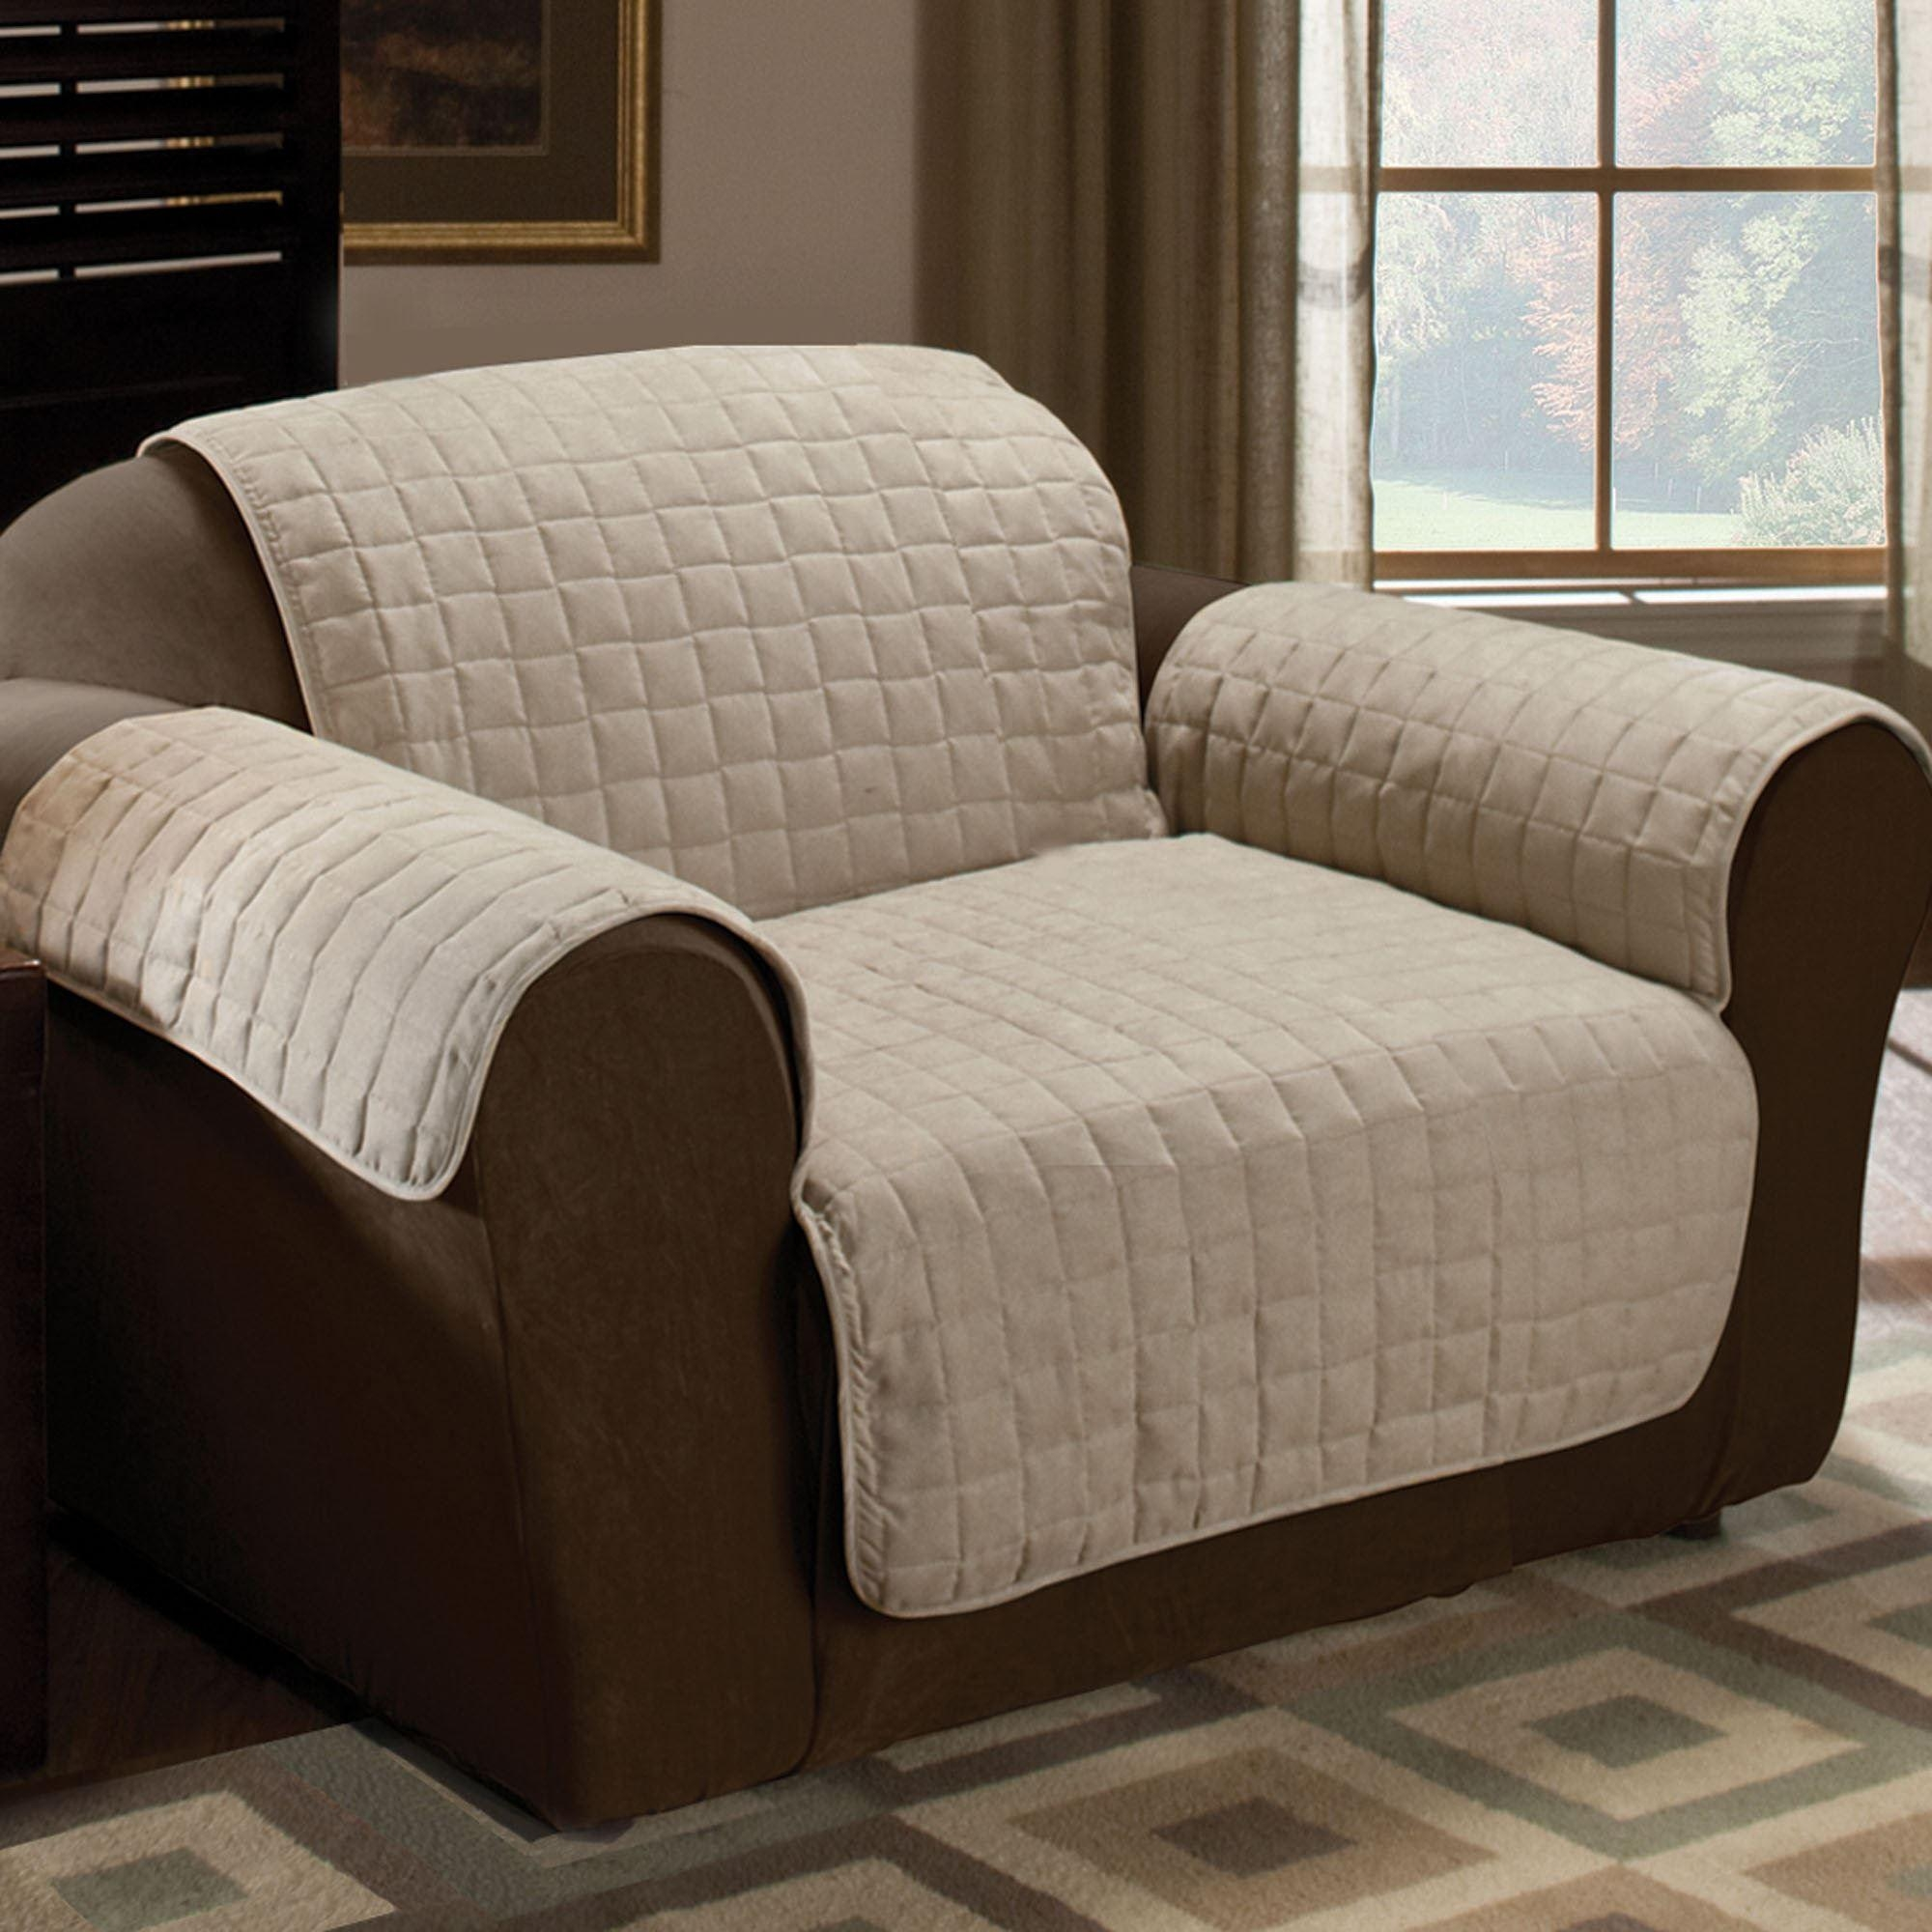 Sofas Center : H077 001 4 Fleece Reversible Petrniture Sofa Covers With Covers For Sofas (Image 18 of 20)